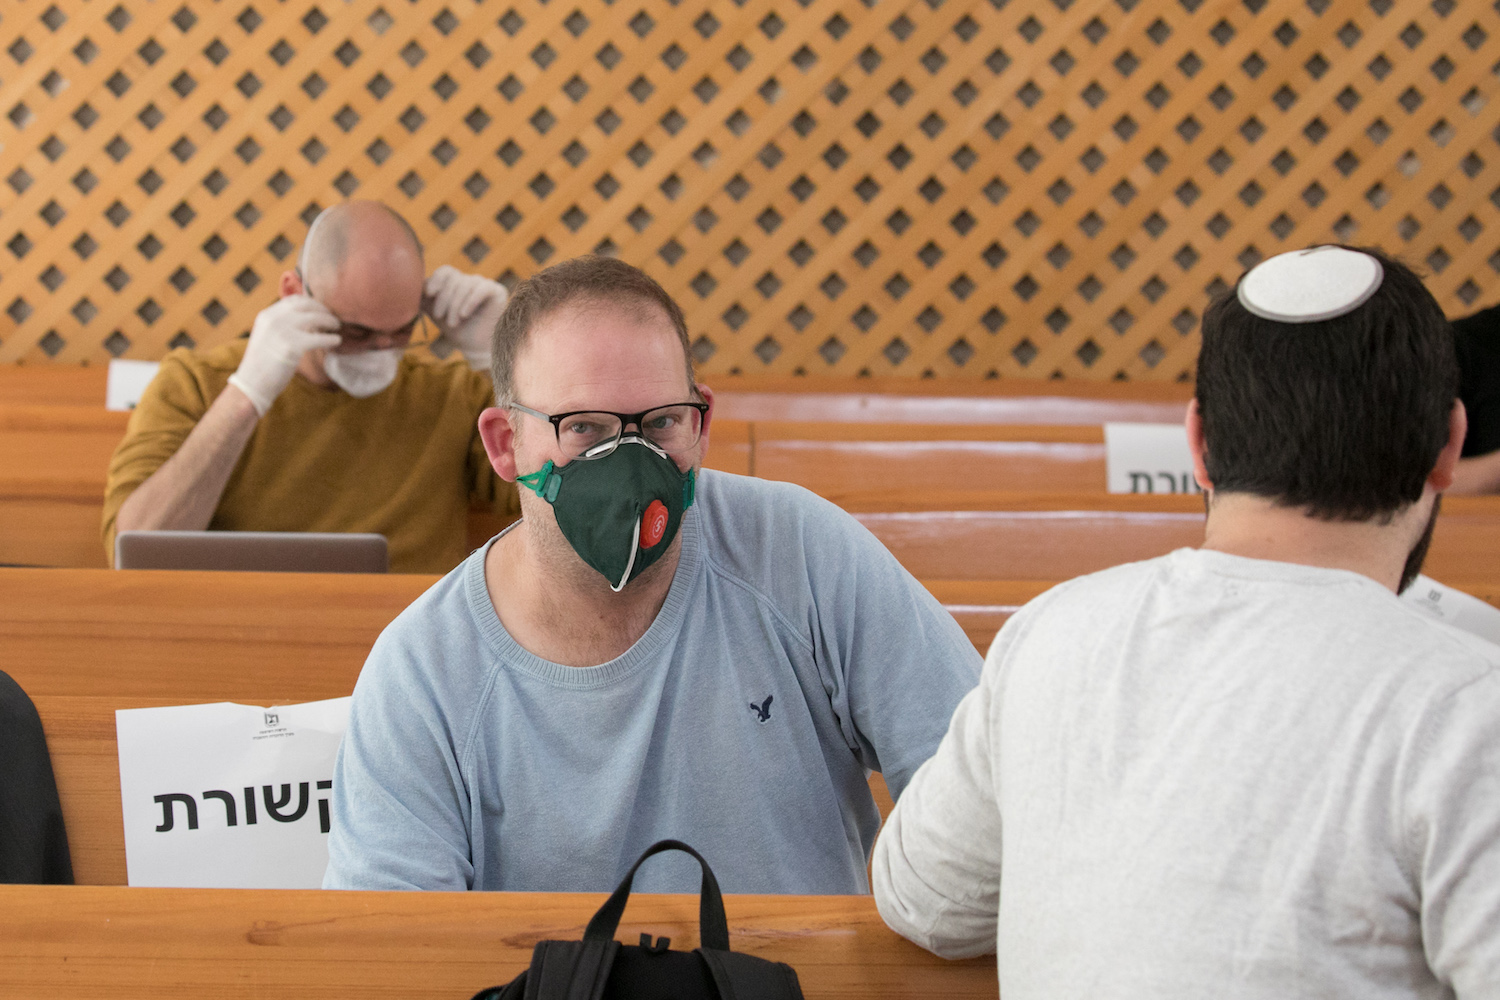 Israeli journalists wear face mask a during hearing at the High Court of Justice in Jerusalem about the decision of Israeli PM Benjamin Netanyahu to authorize the Shin Bet to monitor Israelis' cellphone location data to help combat the coronavirus, March 19, 2019. (Olivier Fitoussi/Flash90)